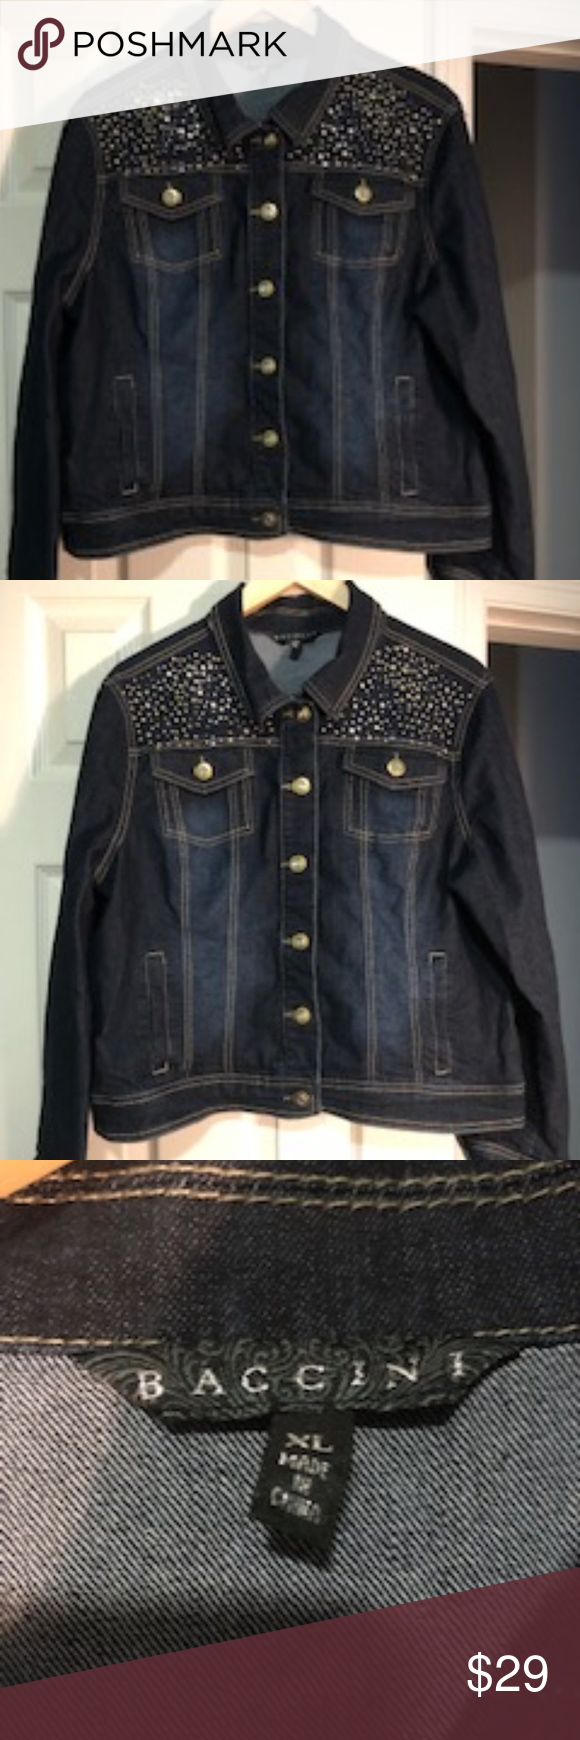 Baccini Jean Jacket With Embellishments Size Xl Jackets Jean Jacket Beautiful Jacket [ 1740 x 580 Pixel ]